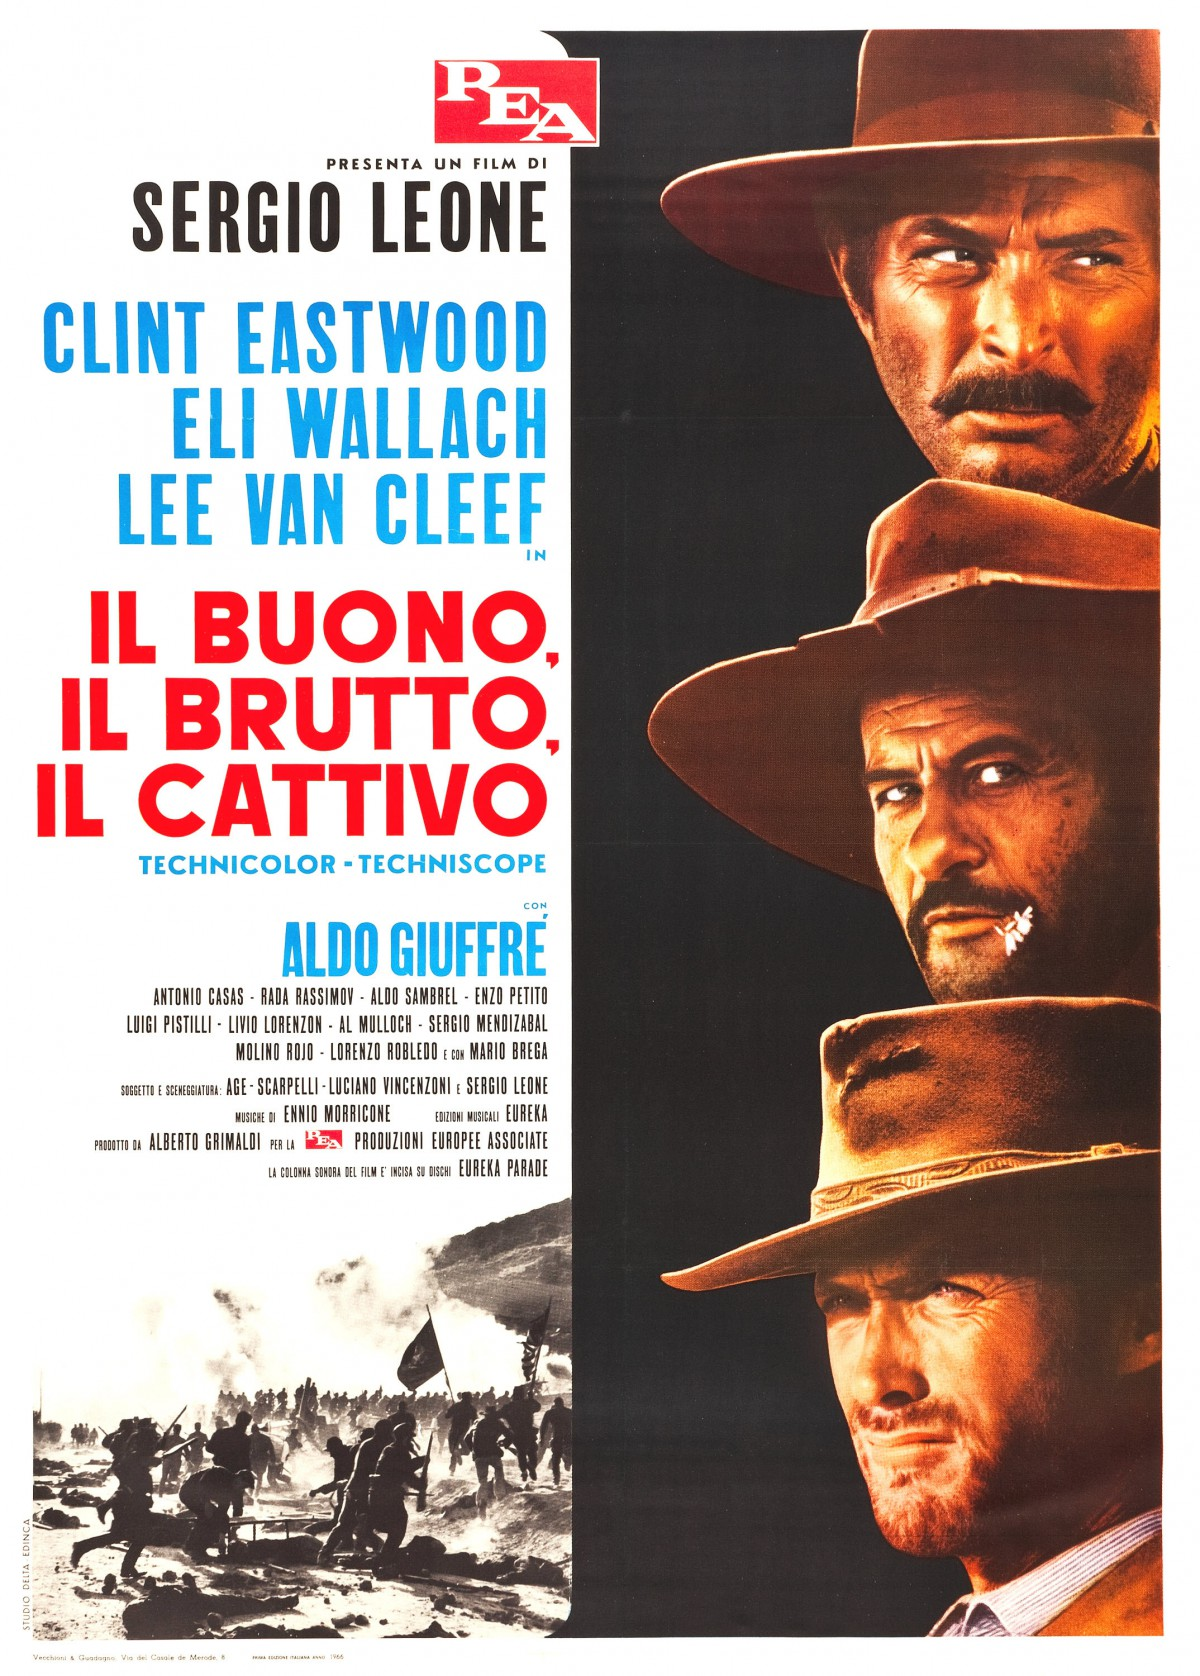 95. The Good, the Bad and the Ugly (1966)